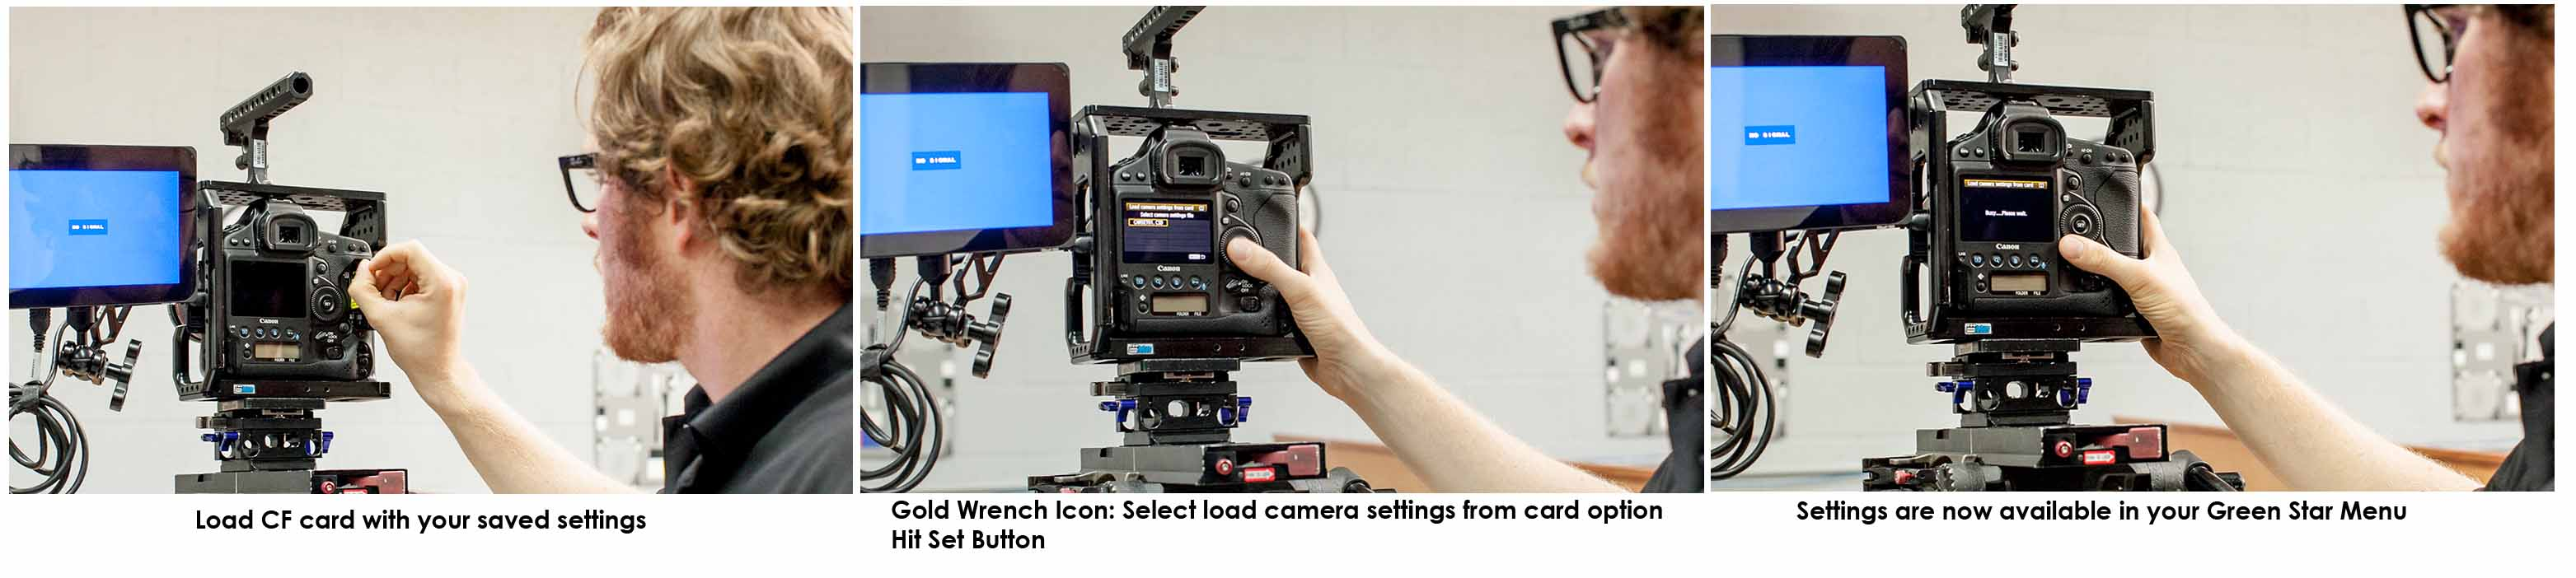 Loading saved settings from CF card; Loading settings into another camera